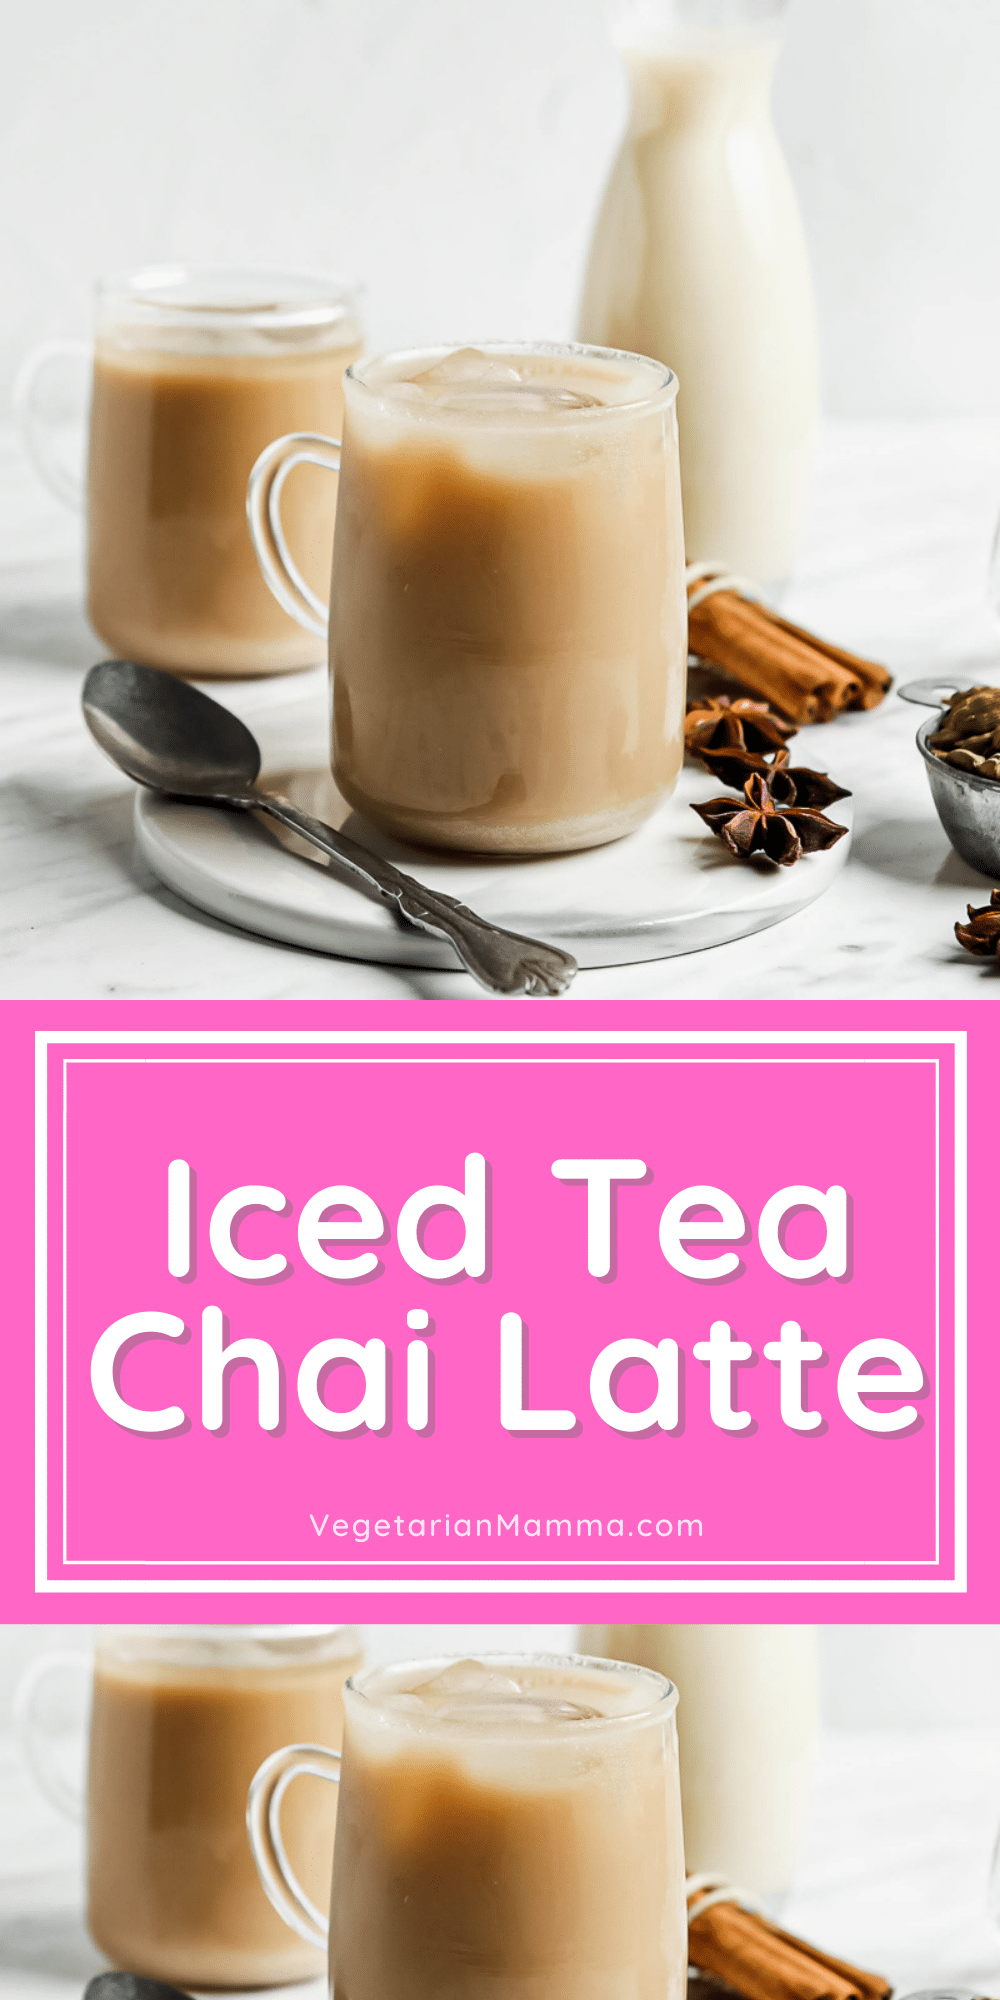 This Iced Chai Tea Latte is a cold drink packed with sweet, warm spices! It's the perfect way to enjoy a chai latte on a warm day, or any time you're craving this spicy drink. This latte is dairy free, vegan, and amped up with a shot of espresso.